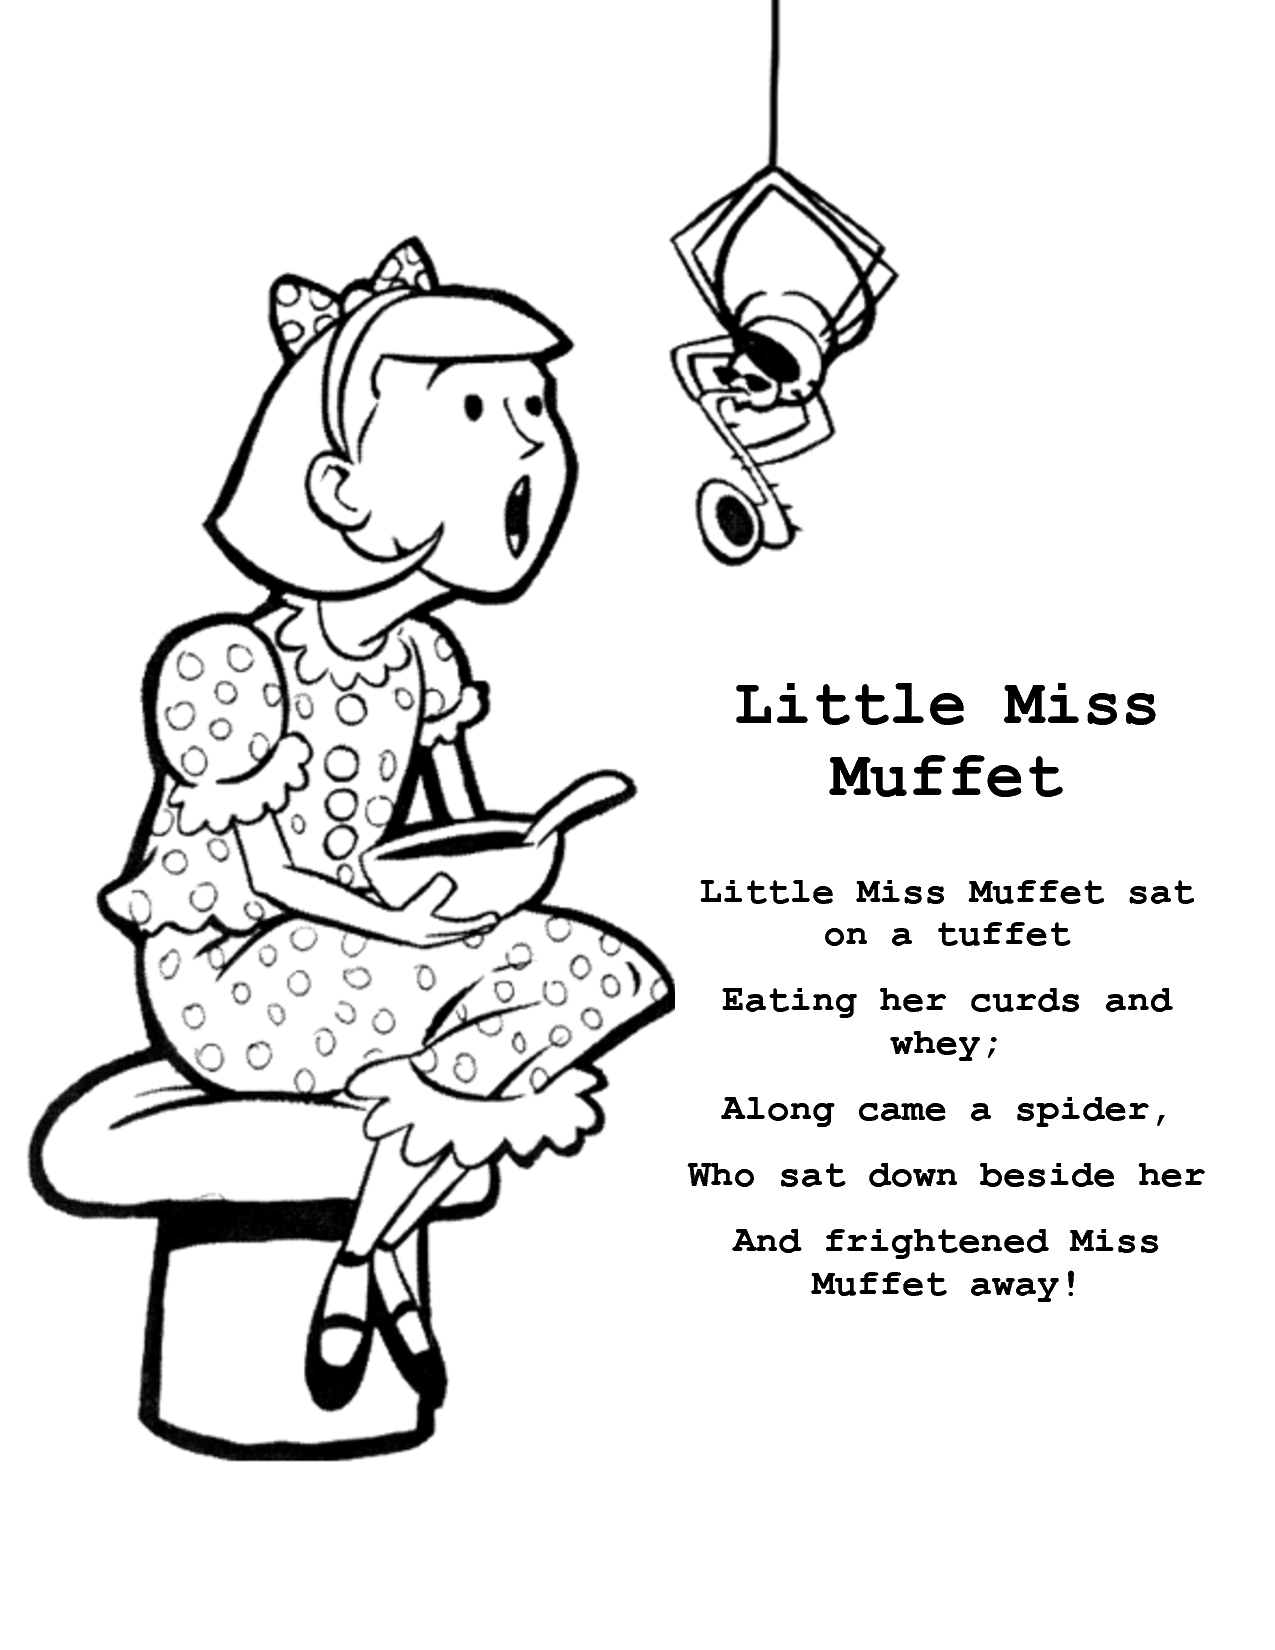 little miss muffet coloring pages - photo#3